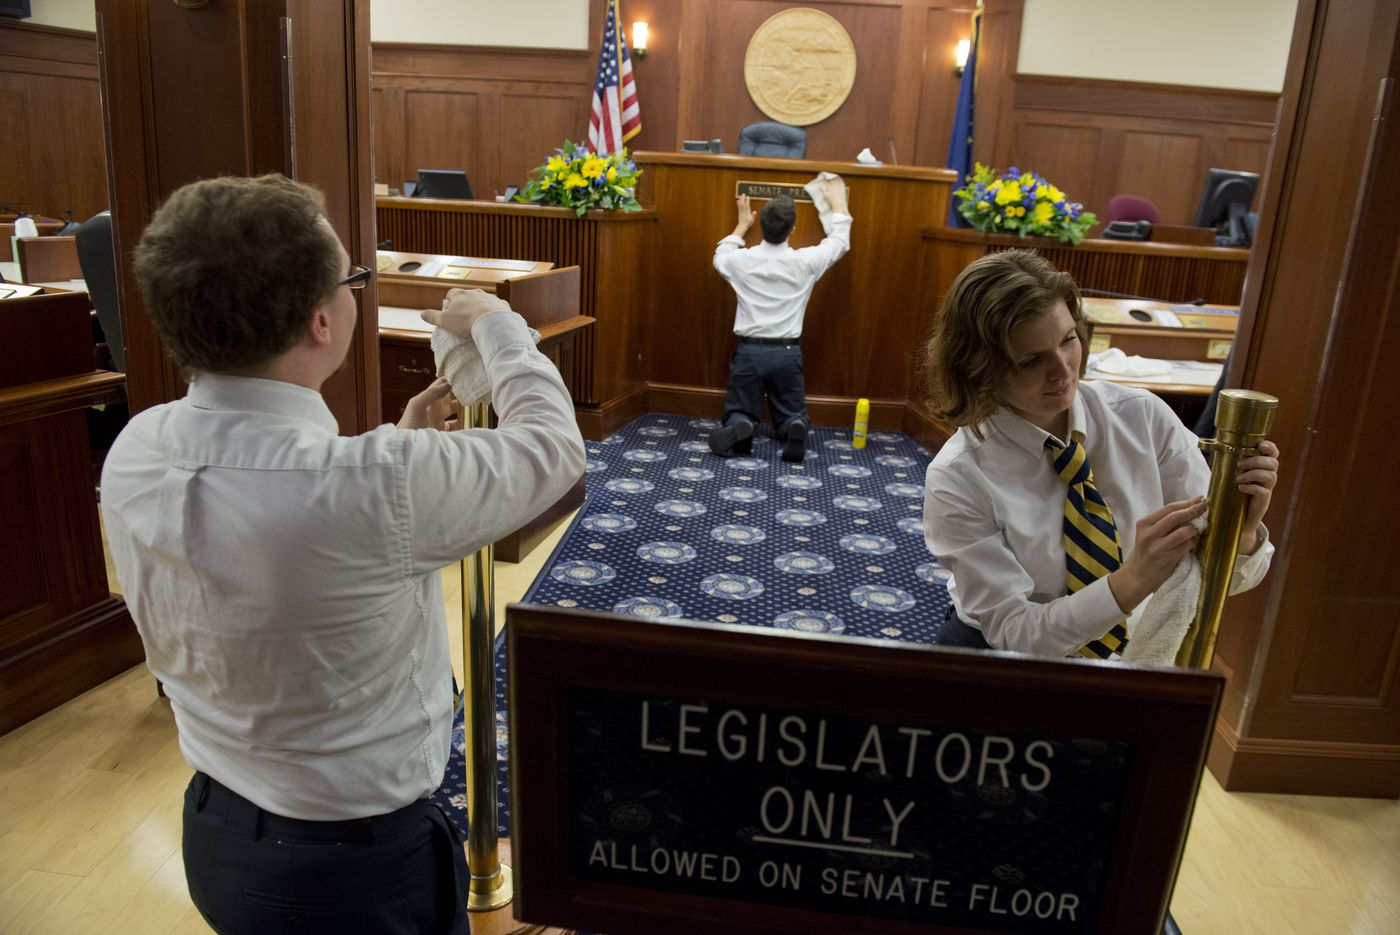 Senate pages, from left, Jacob Pennell, River Maketa and Sarah Bertram polish the wood and brass on the Senate floor in the Alaska state Capitol on the day before the legislative session begins.